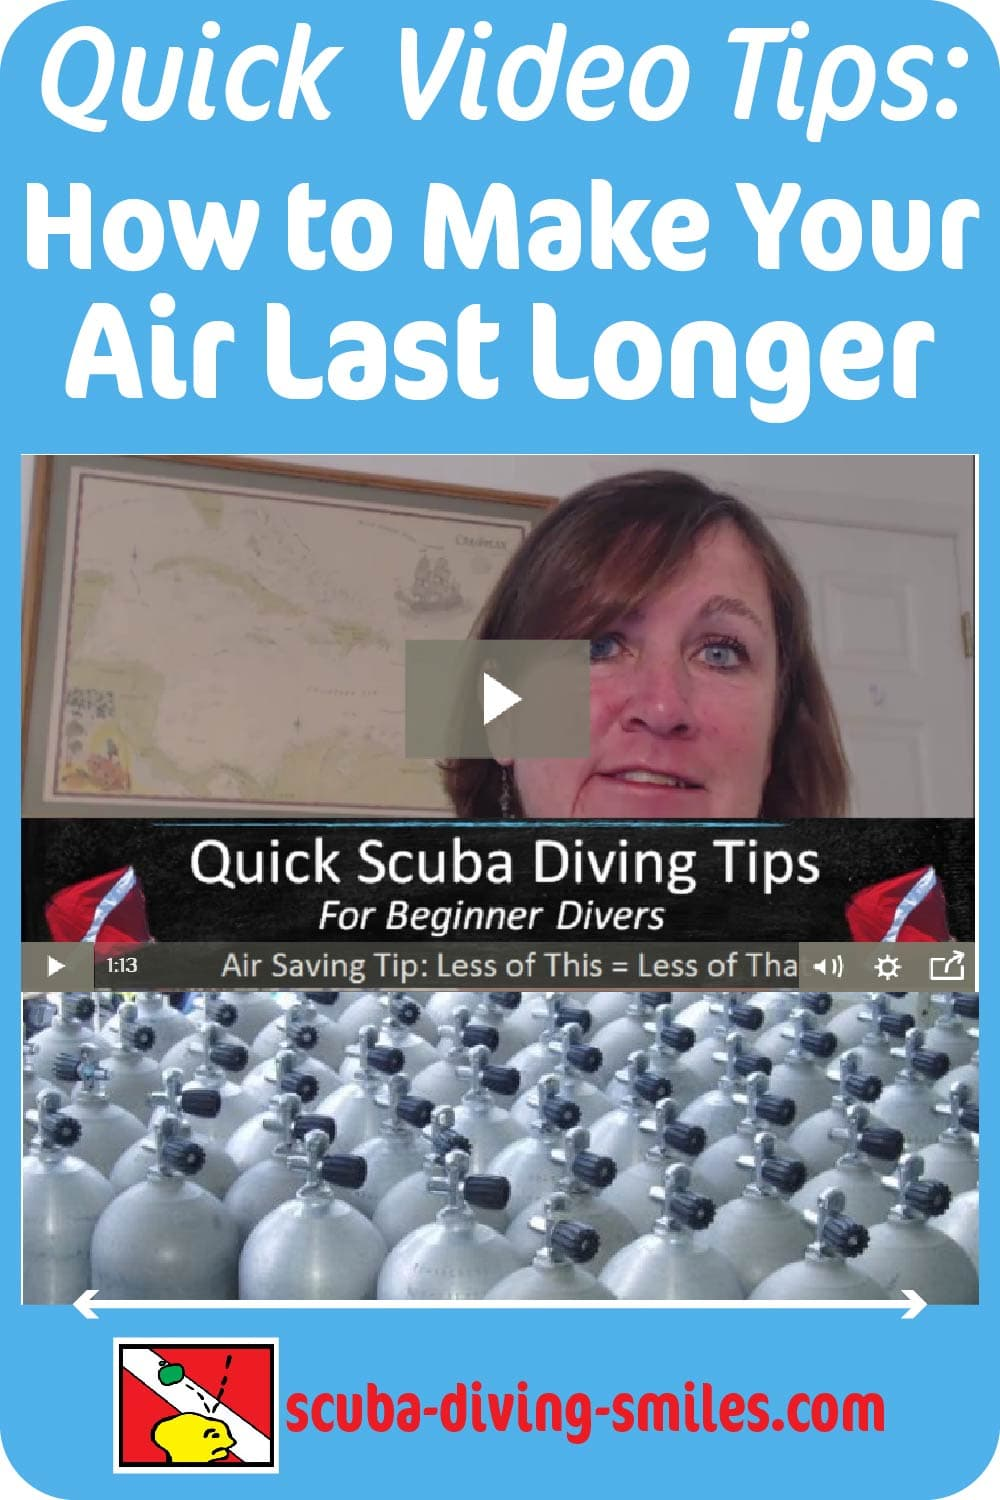 Scuba diving video tips on air consumption